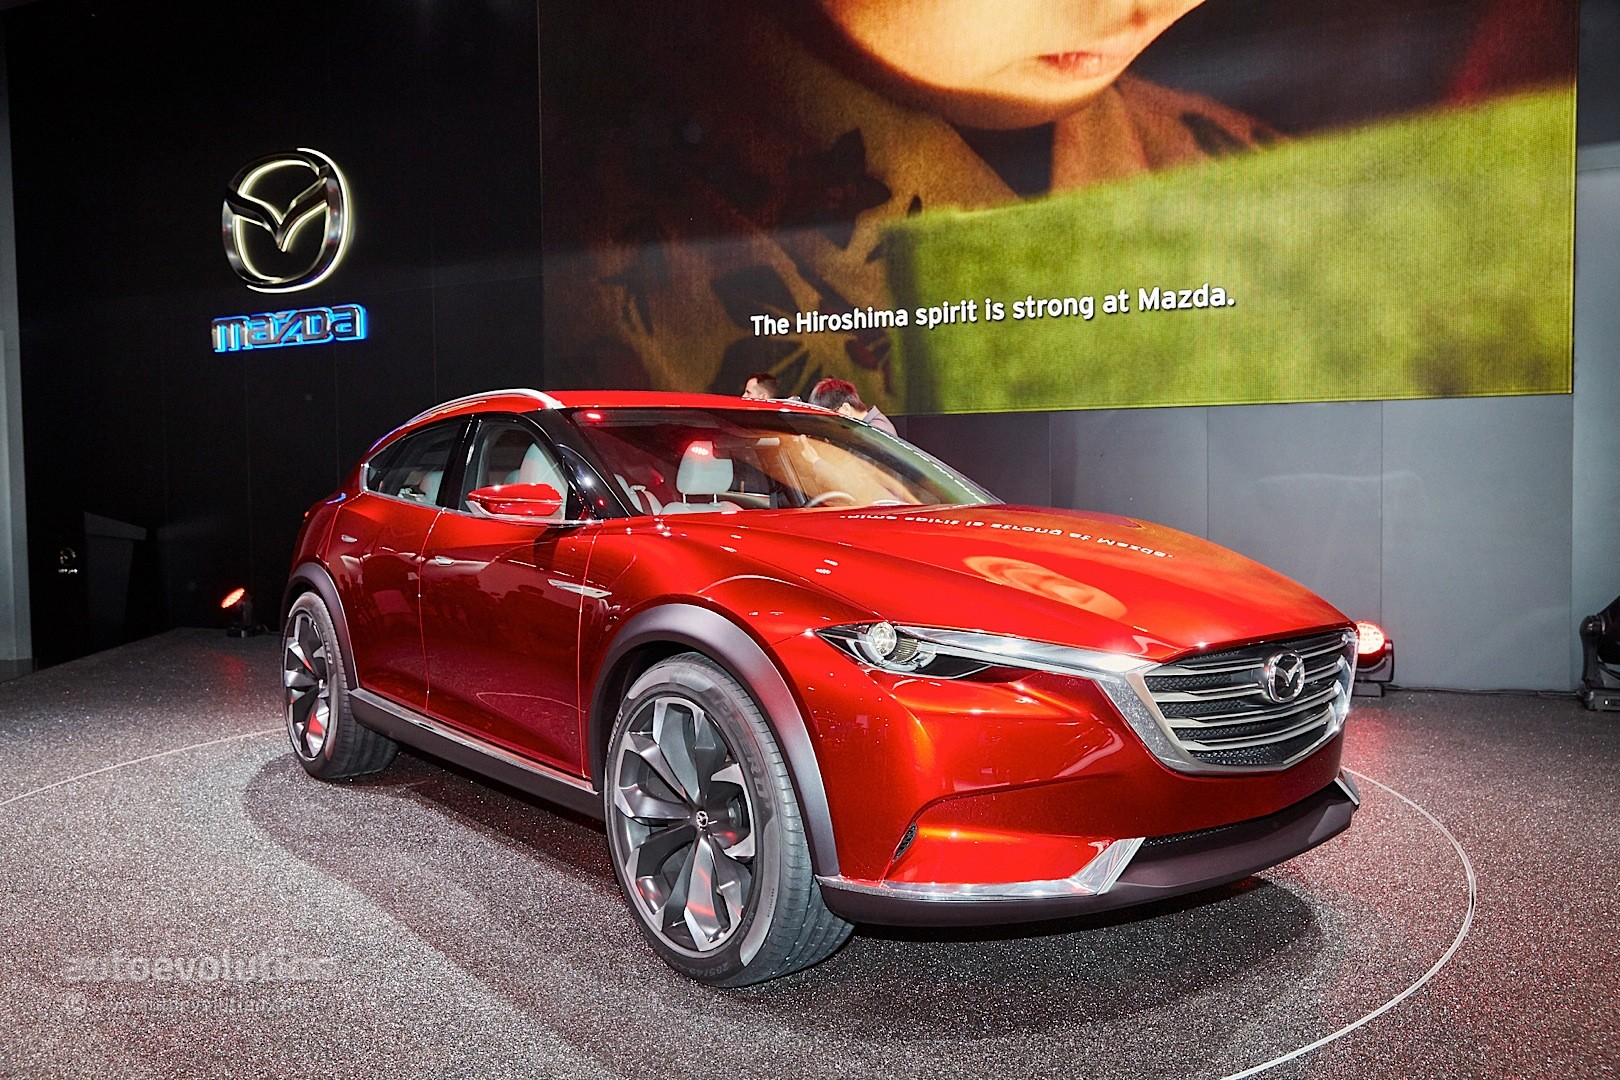 New Mazda Cx 5 Coming In 2023 With Rwd Platform And Inline 6 Engine Autoevolution